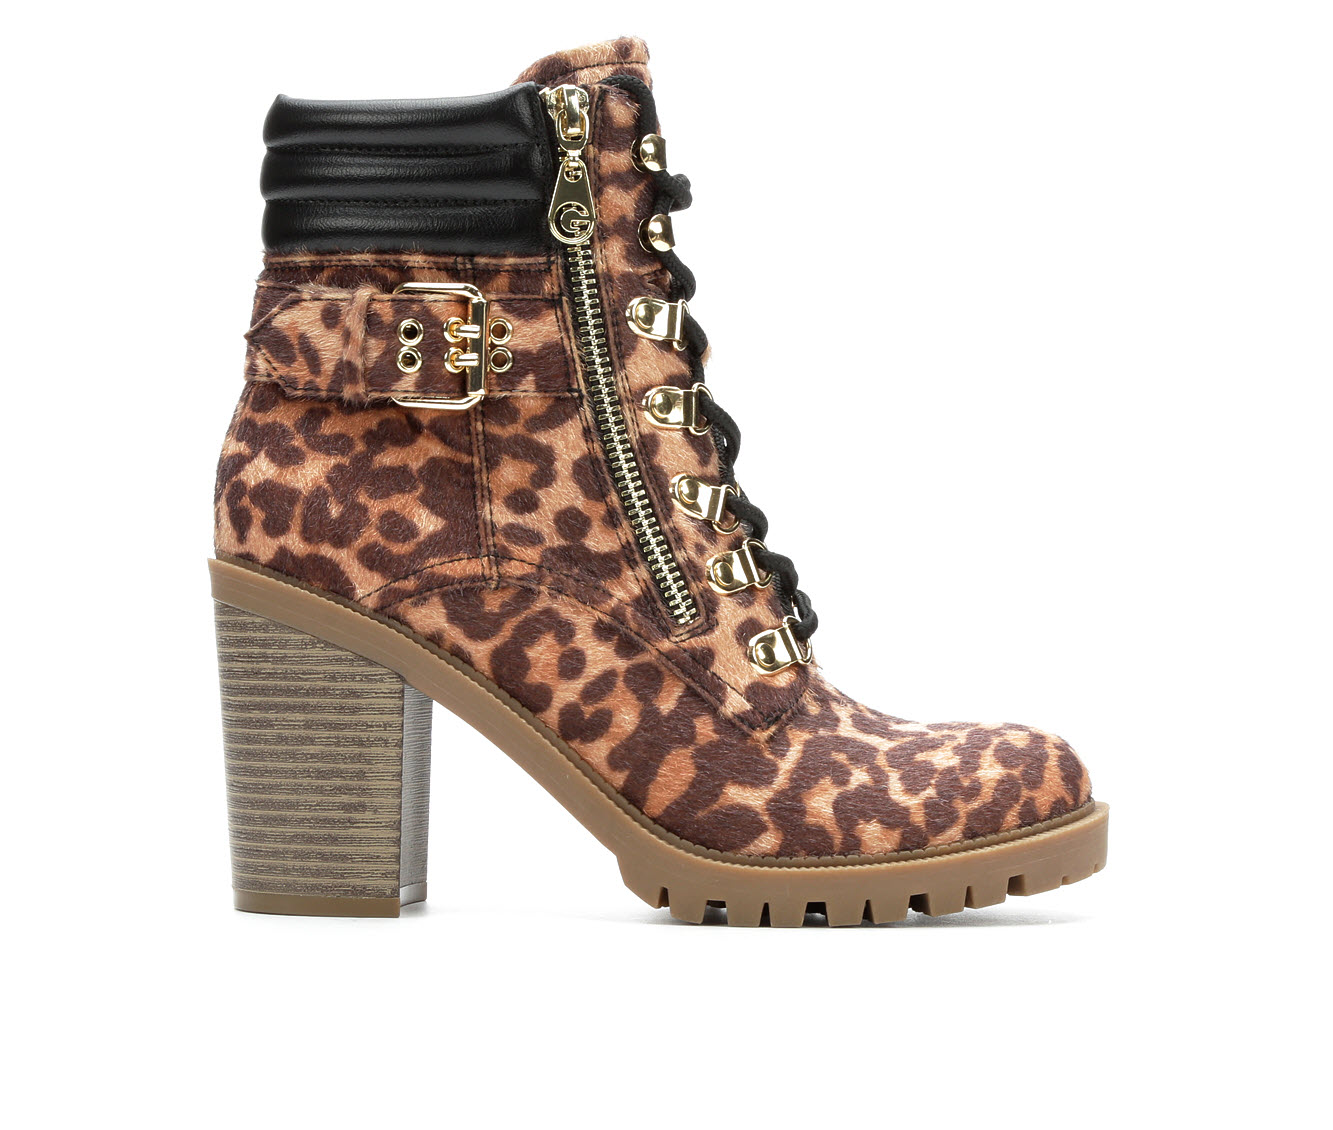 G By Guess Jaylee Women's Boots (Multi-color - Faux Leather)